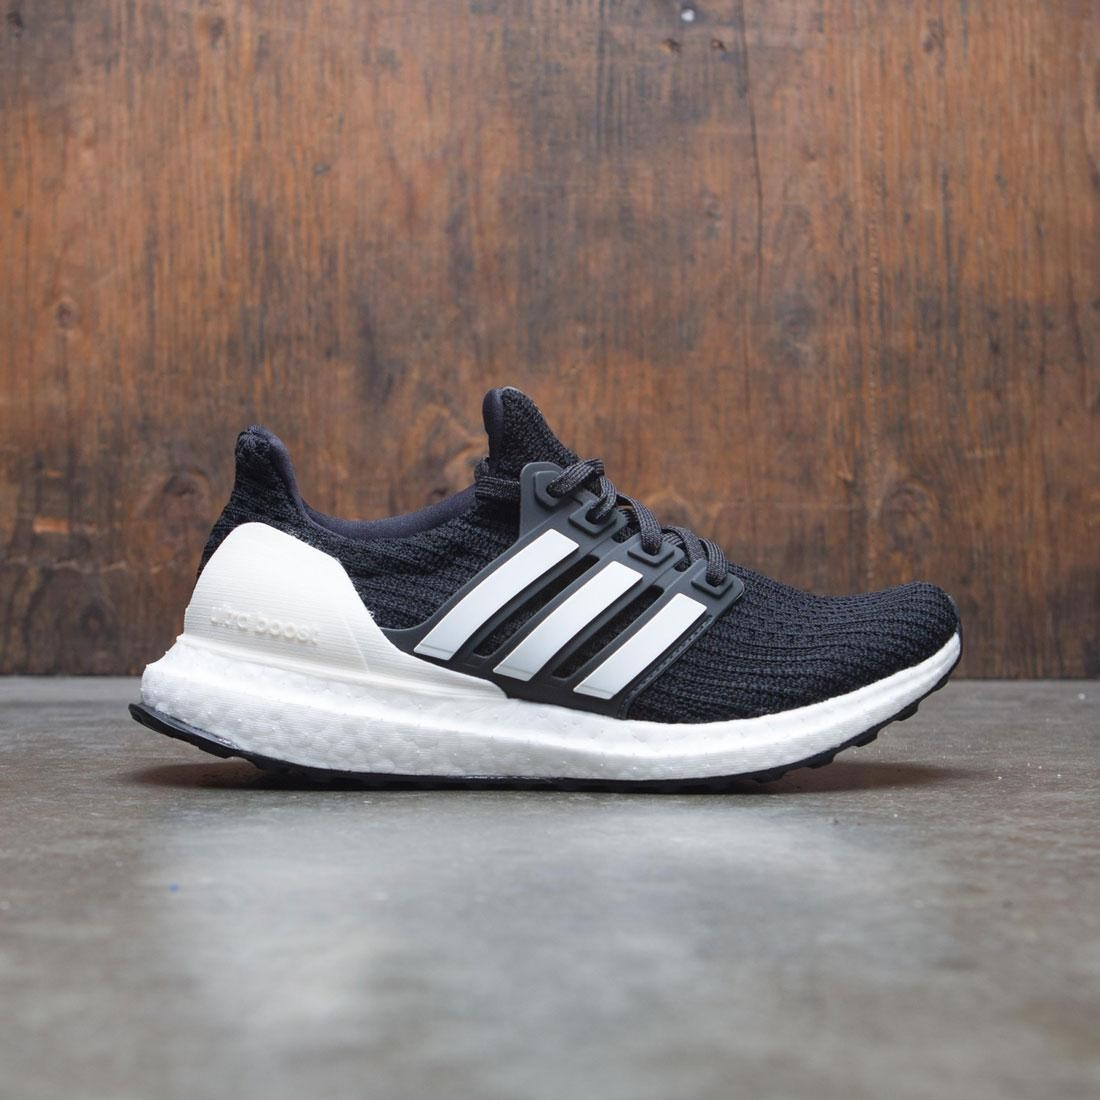 a9df788da8420 Adidas Big Kids UltraBOOST J black cloud white carbon